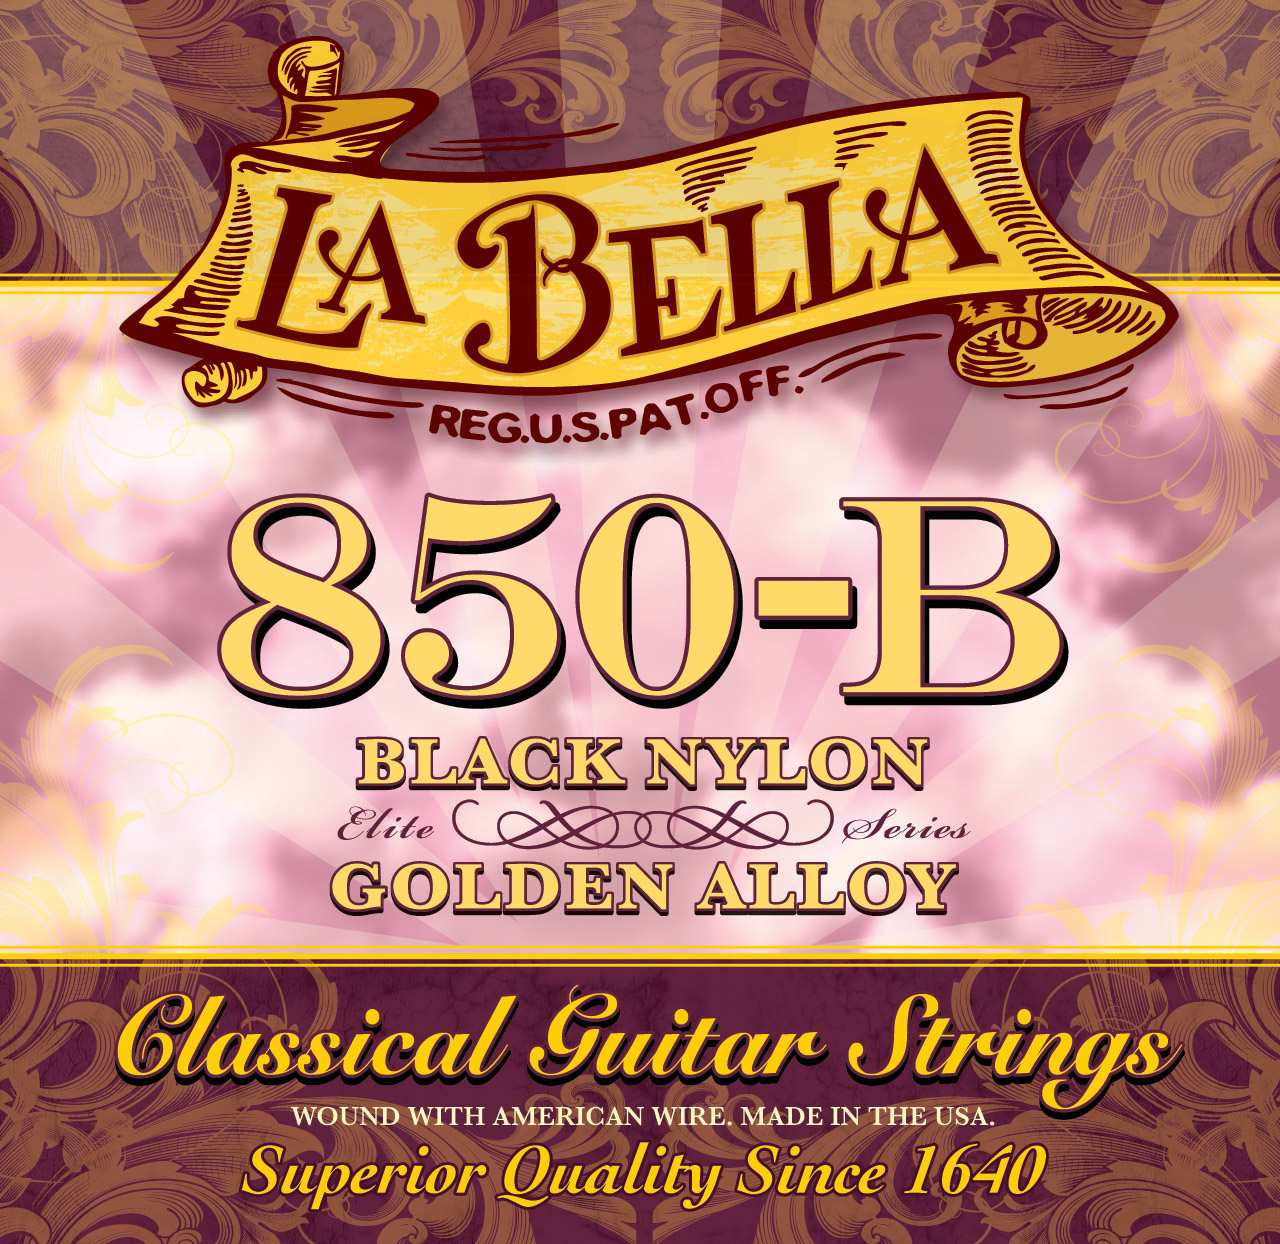 La Bella Elite 850B Classical Guitar Strings, Black Nylon/Gold Alloy, Medium Tension, 28-41